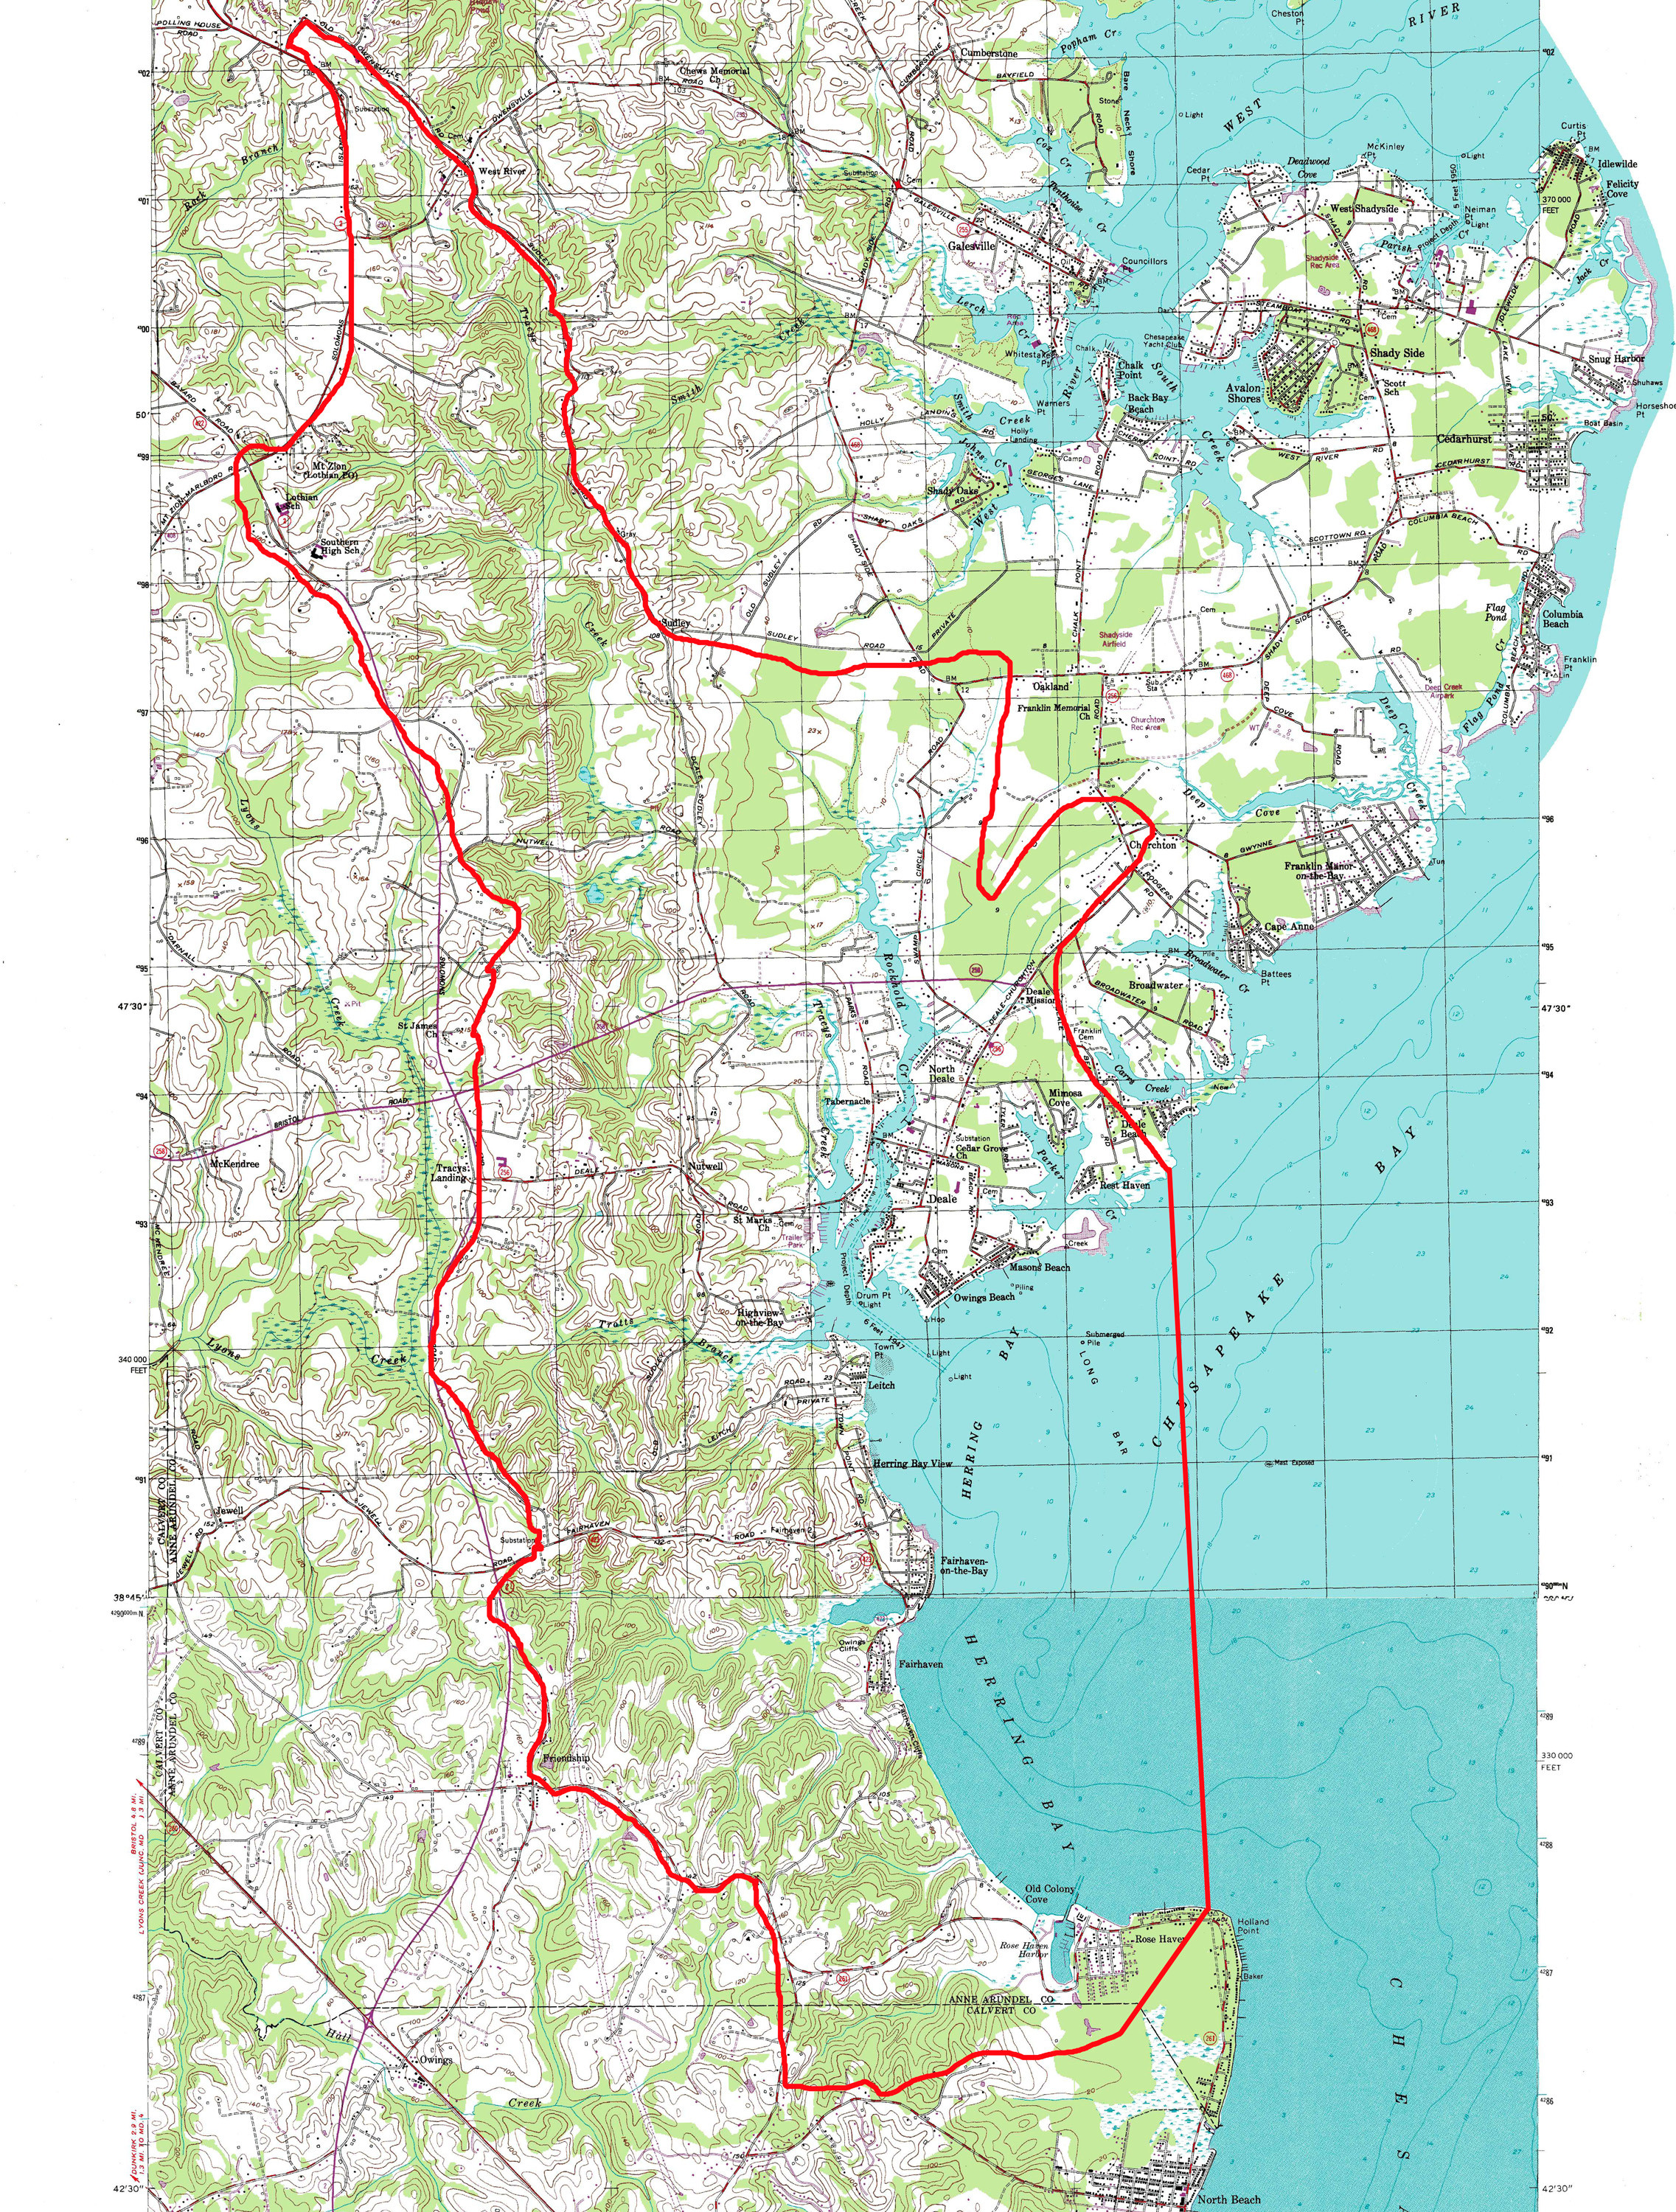 Chesapeake Bay Topographic Map.Advocates For Herring Bay